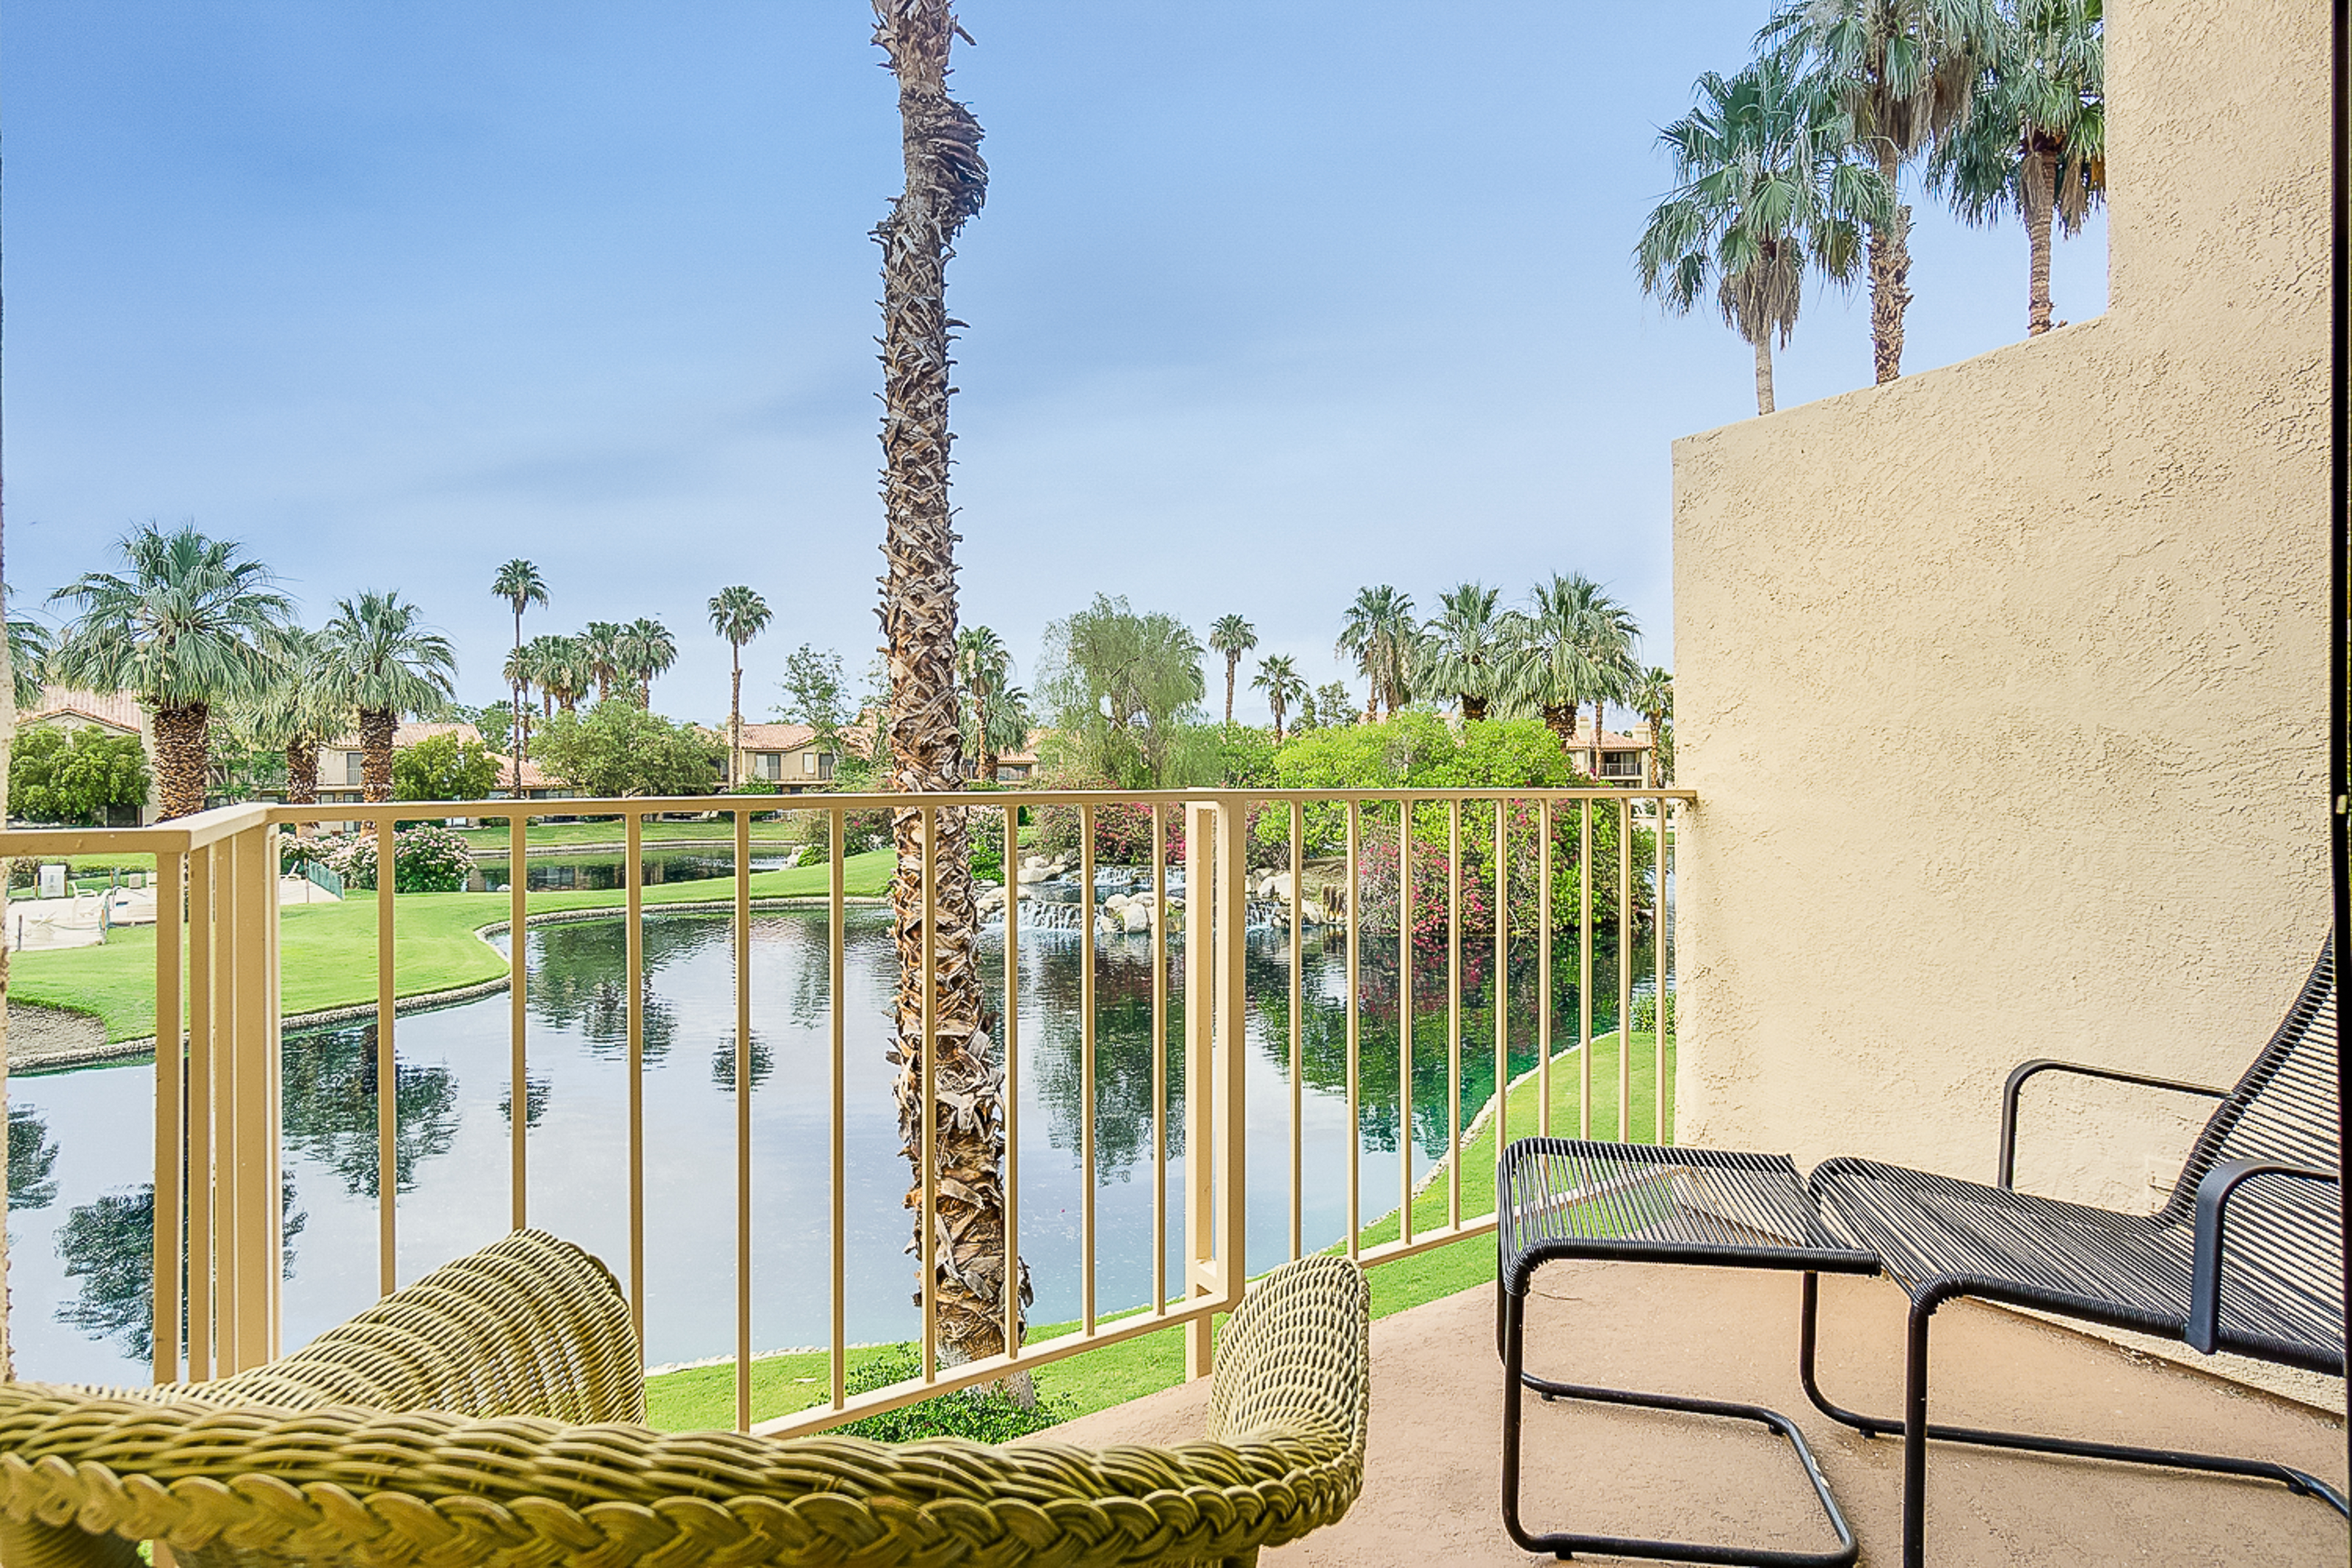 La Quinta CA Vacation Rental Welcome to Palm